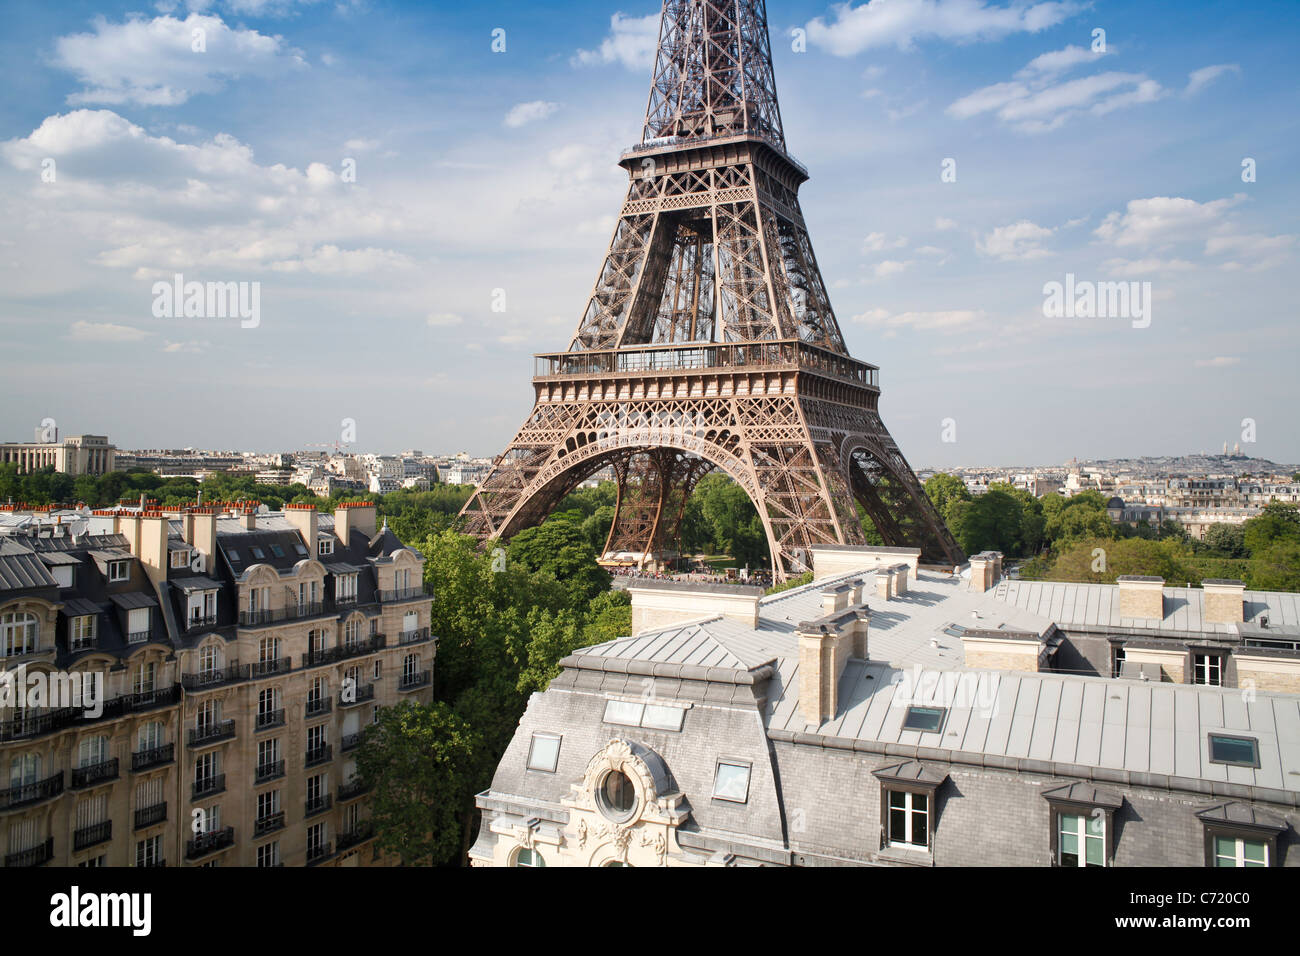 France, Paris, Eiffel Tower, viewed over rooftops - Stock Image